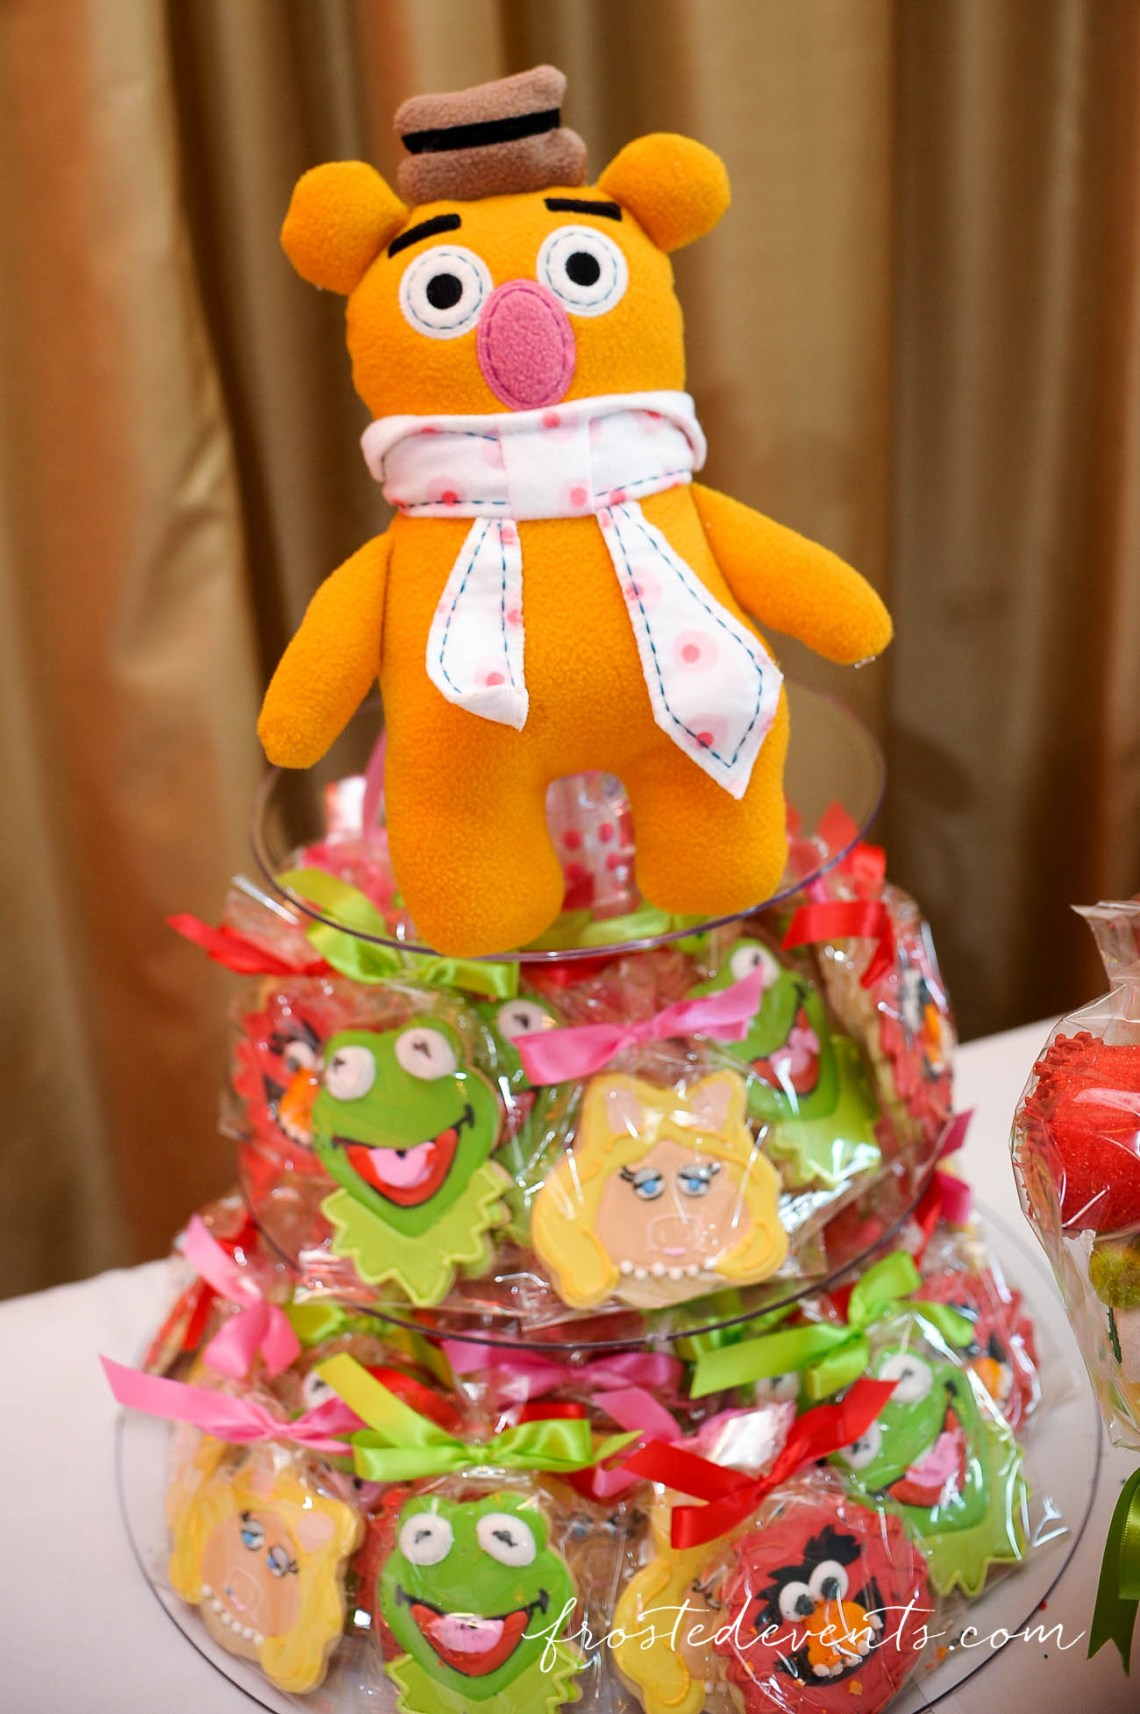 Muppets TV Show- The Muppets Show- Muppets Party Birthday- Muppet party decorations - fonzi bear #muppets